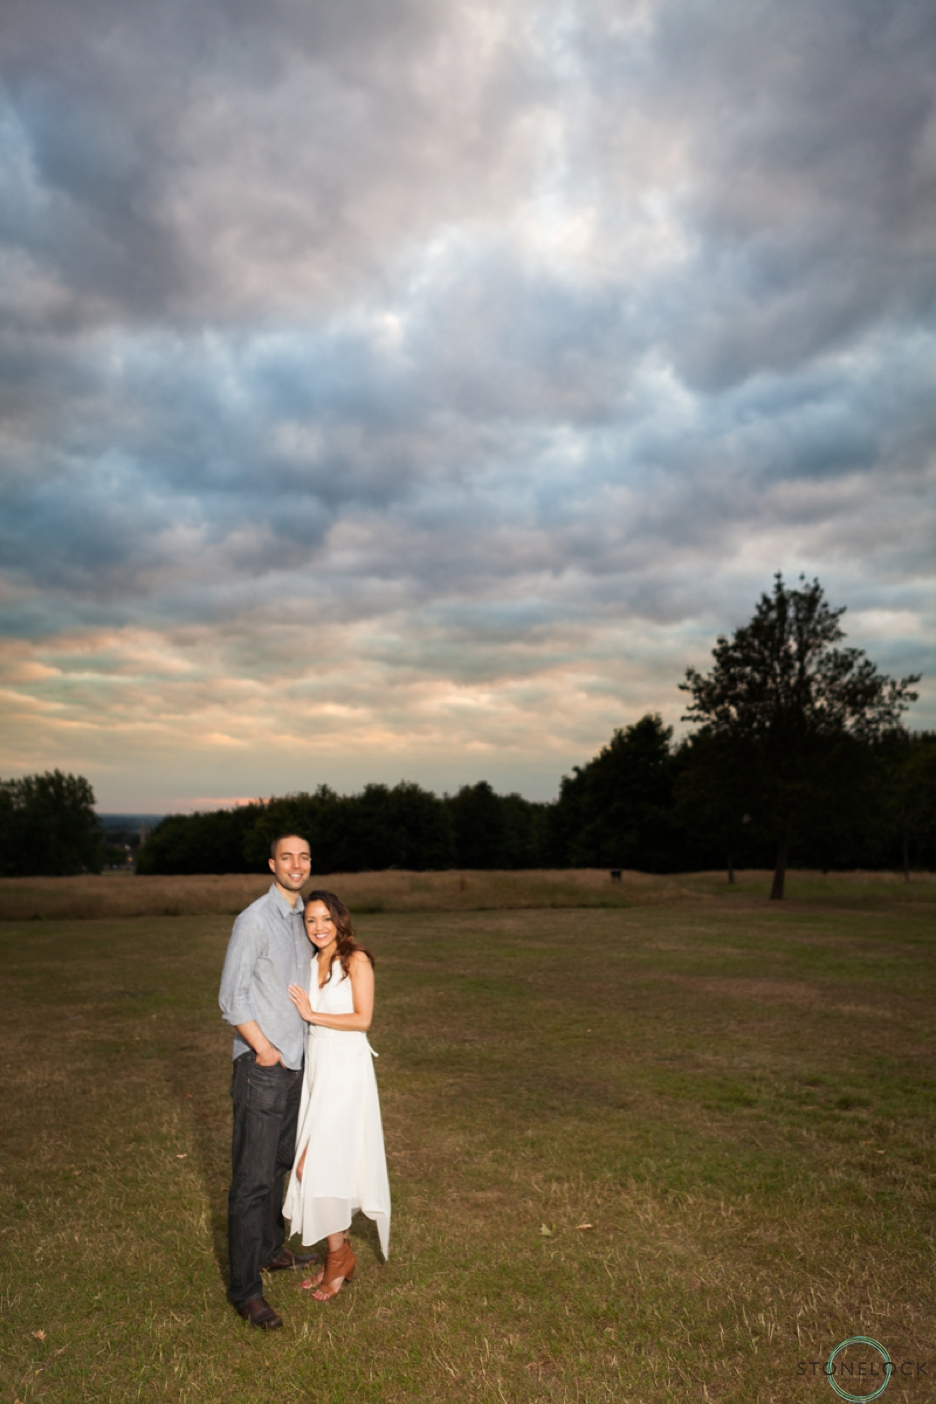 Golden Hour engagement photography on Streatham Common, South London